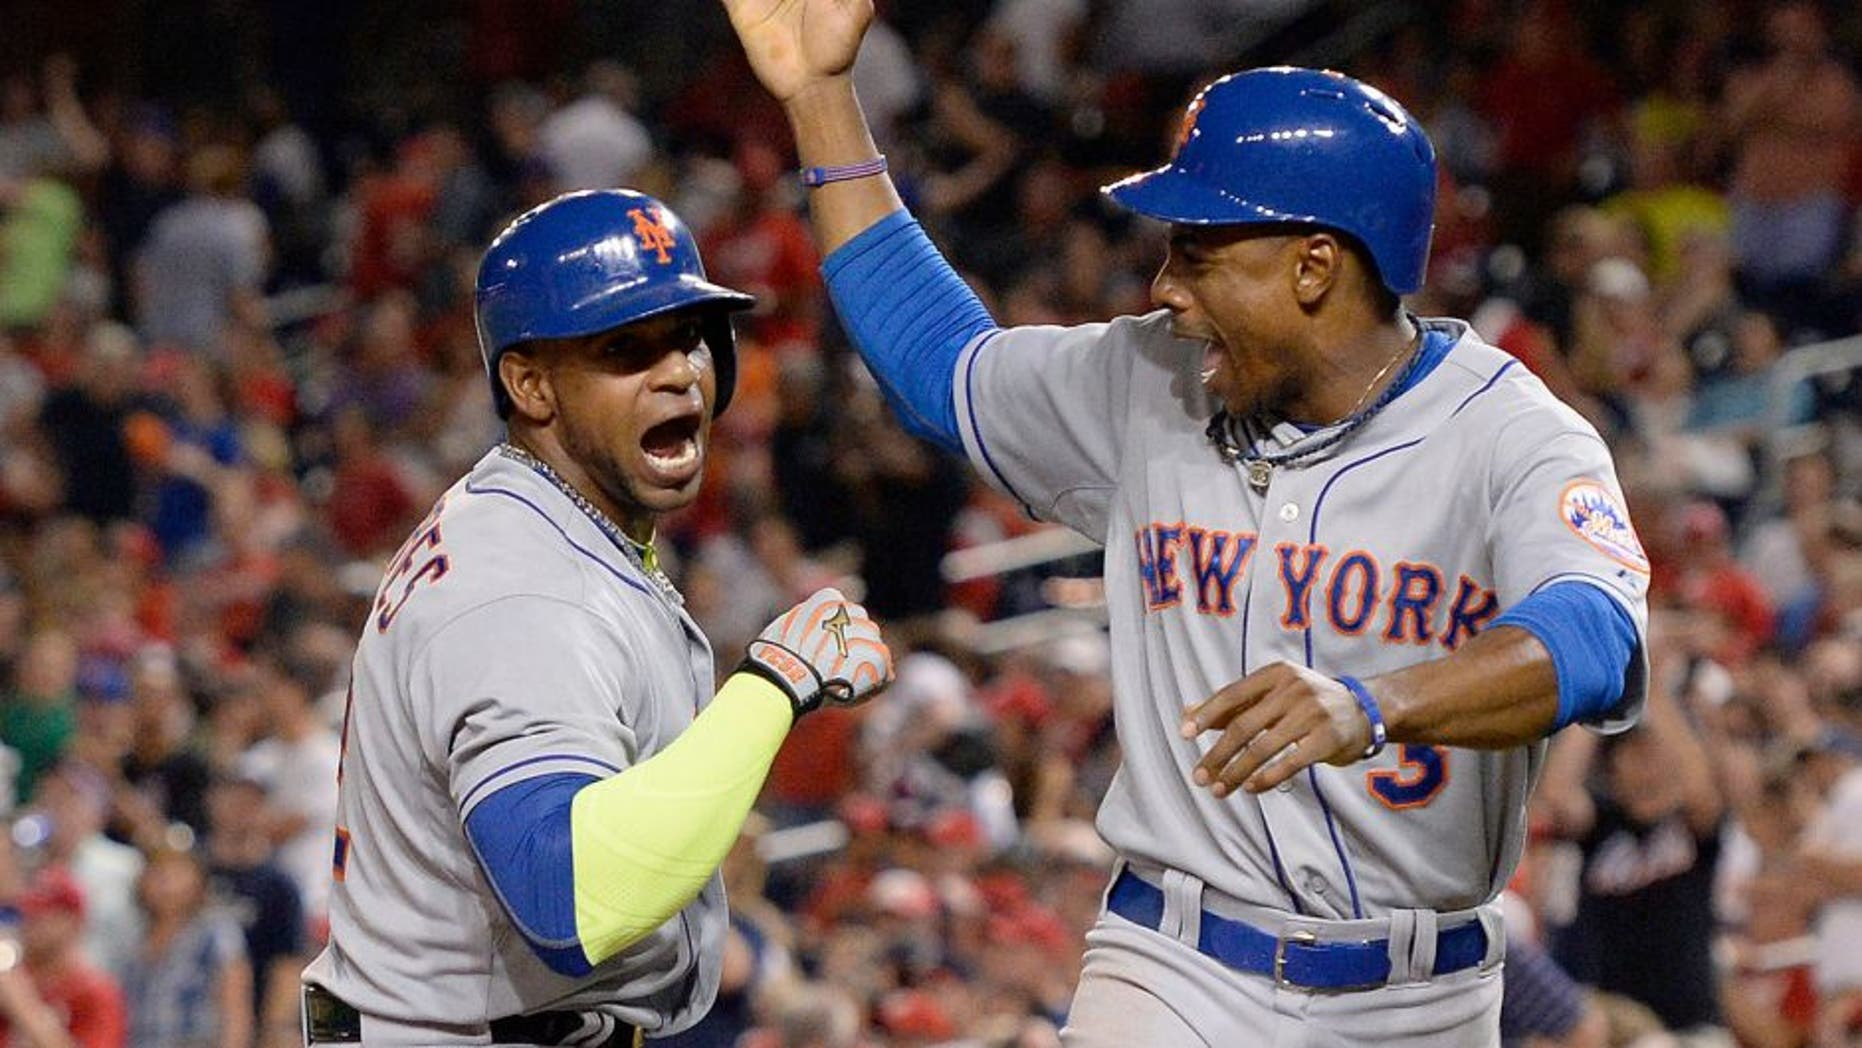 Sep 9, 2015; Washington, DC, USA; New York Mets center fielder Yoenis Cespedes (52) celebrates with right fielder Curtis Granderson (3) after hitting a two run home run in the eighth inning against the Washington Nationals at Nationals Park. New York Mets defeated Washington Nationals 5-3. Mandatory Credit: Tommy Gilligan-USA TODAY Sports